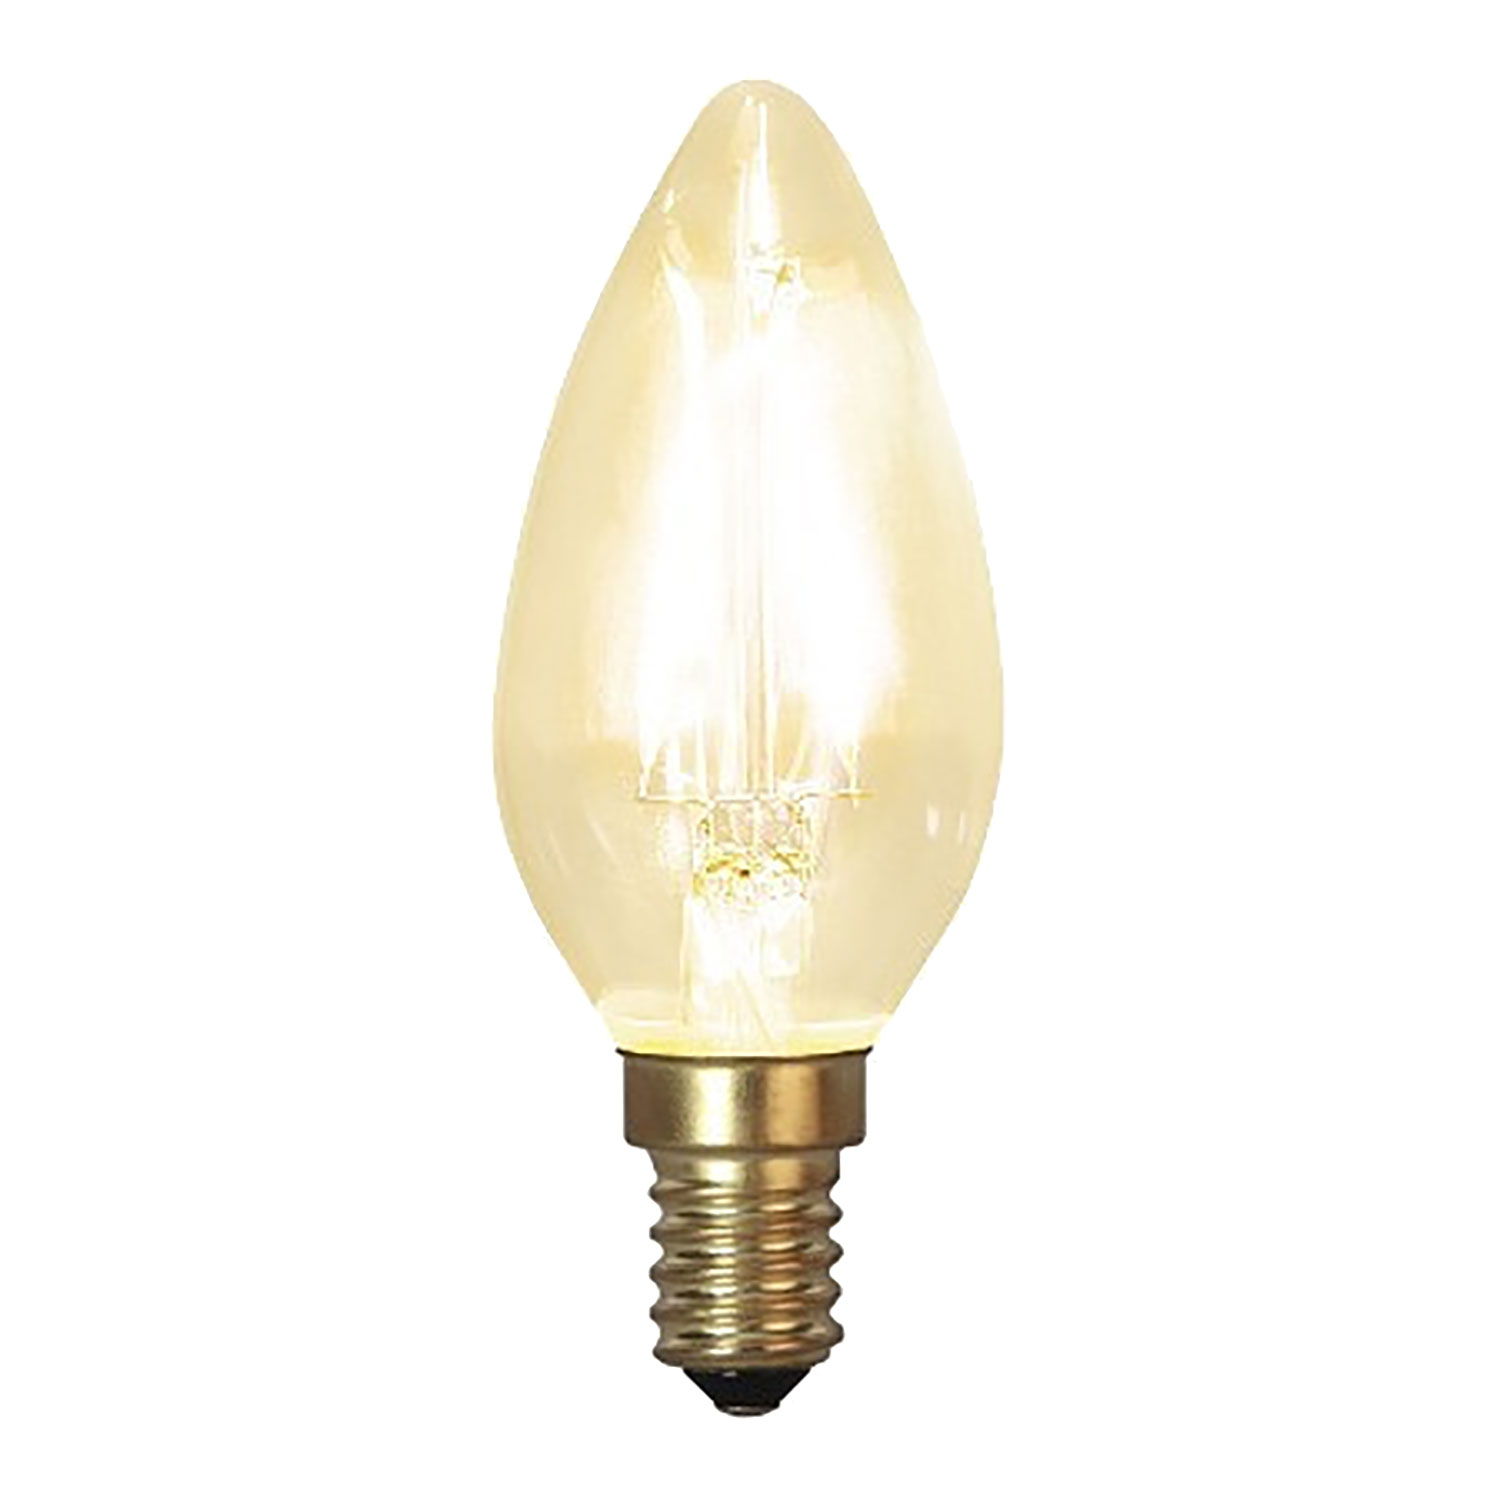 LED-lampa E14 C35 soft glow, transparent